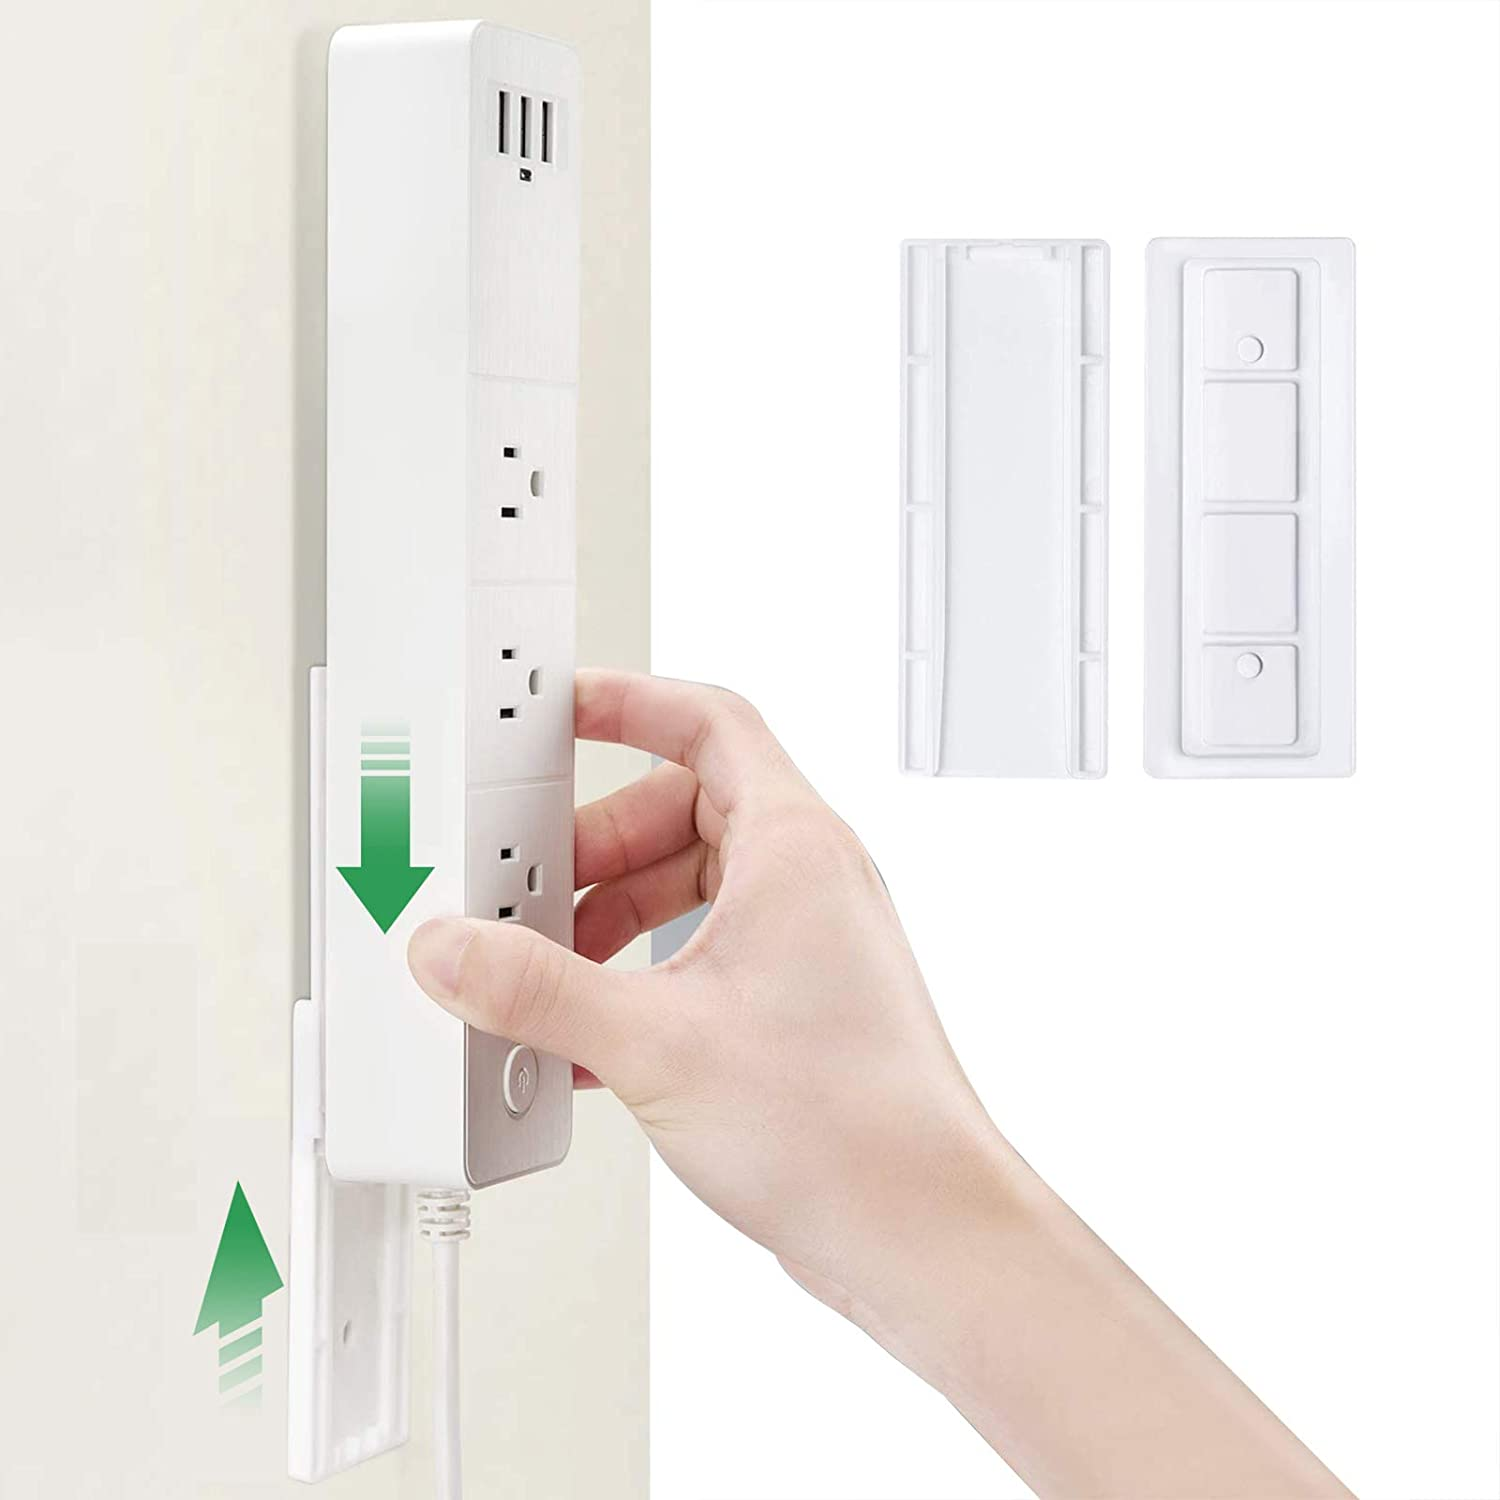 Self Adhesive Power Strip Holder Punch Free Wall-Mounted Socket Sticker Fixator for Photo Frame, Wall Clock, Cabinet Light, WiFi Router(2 Pack)